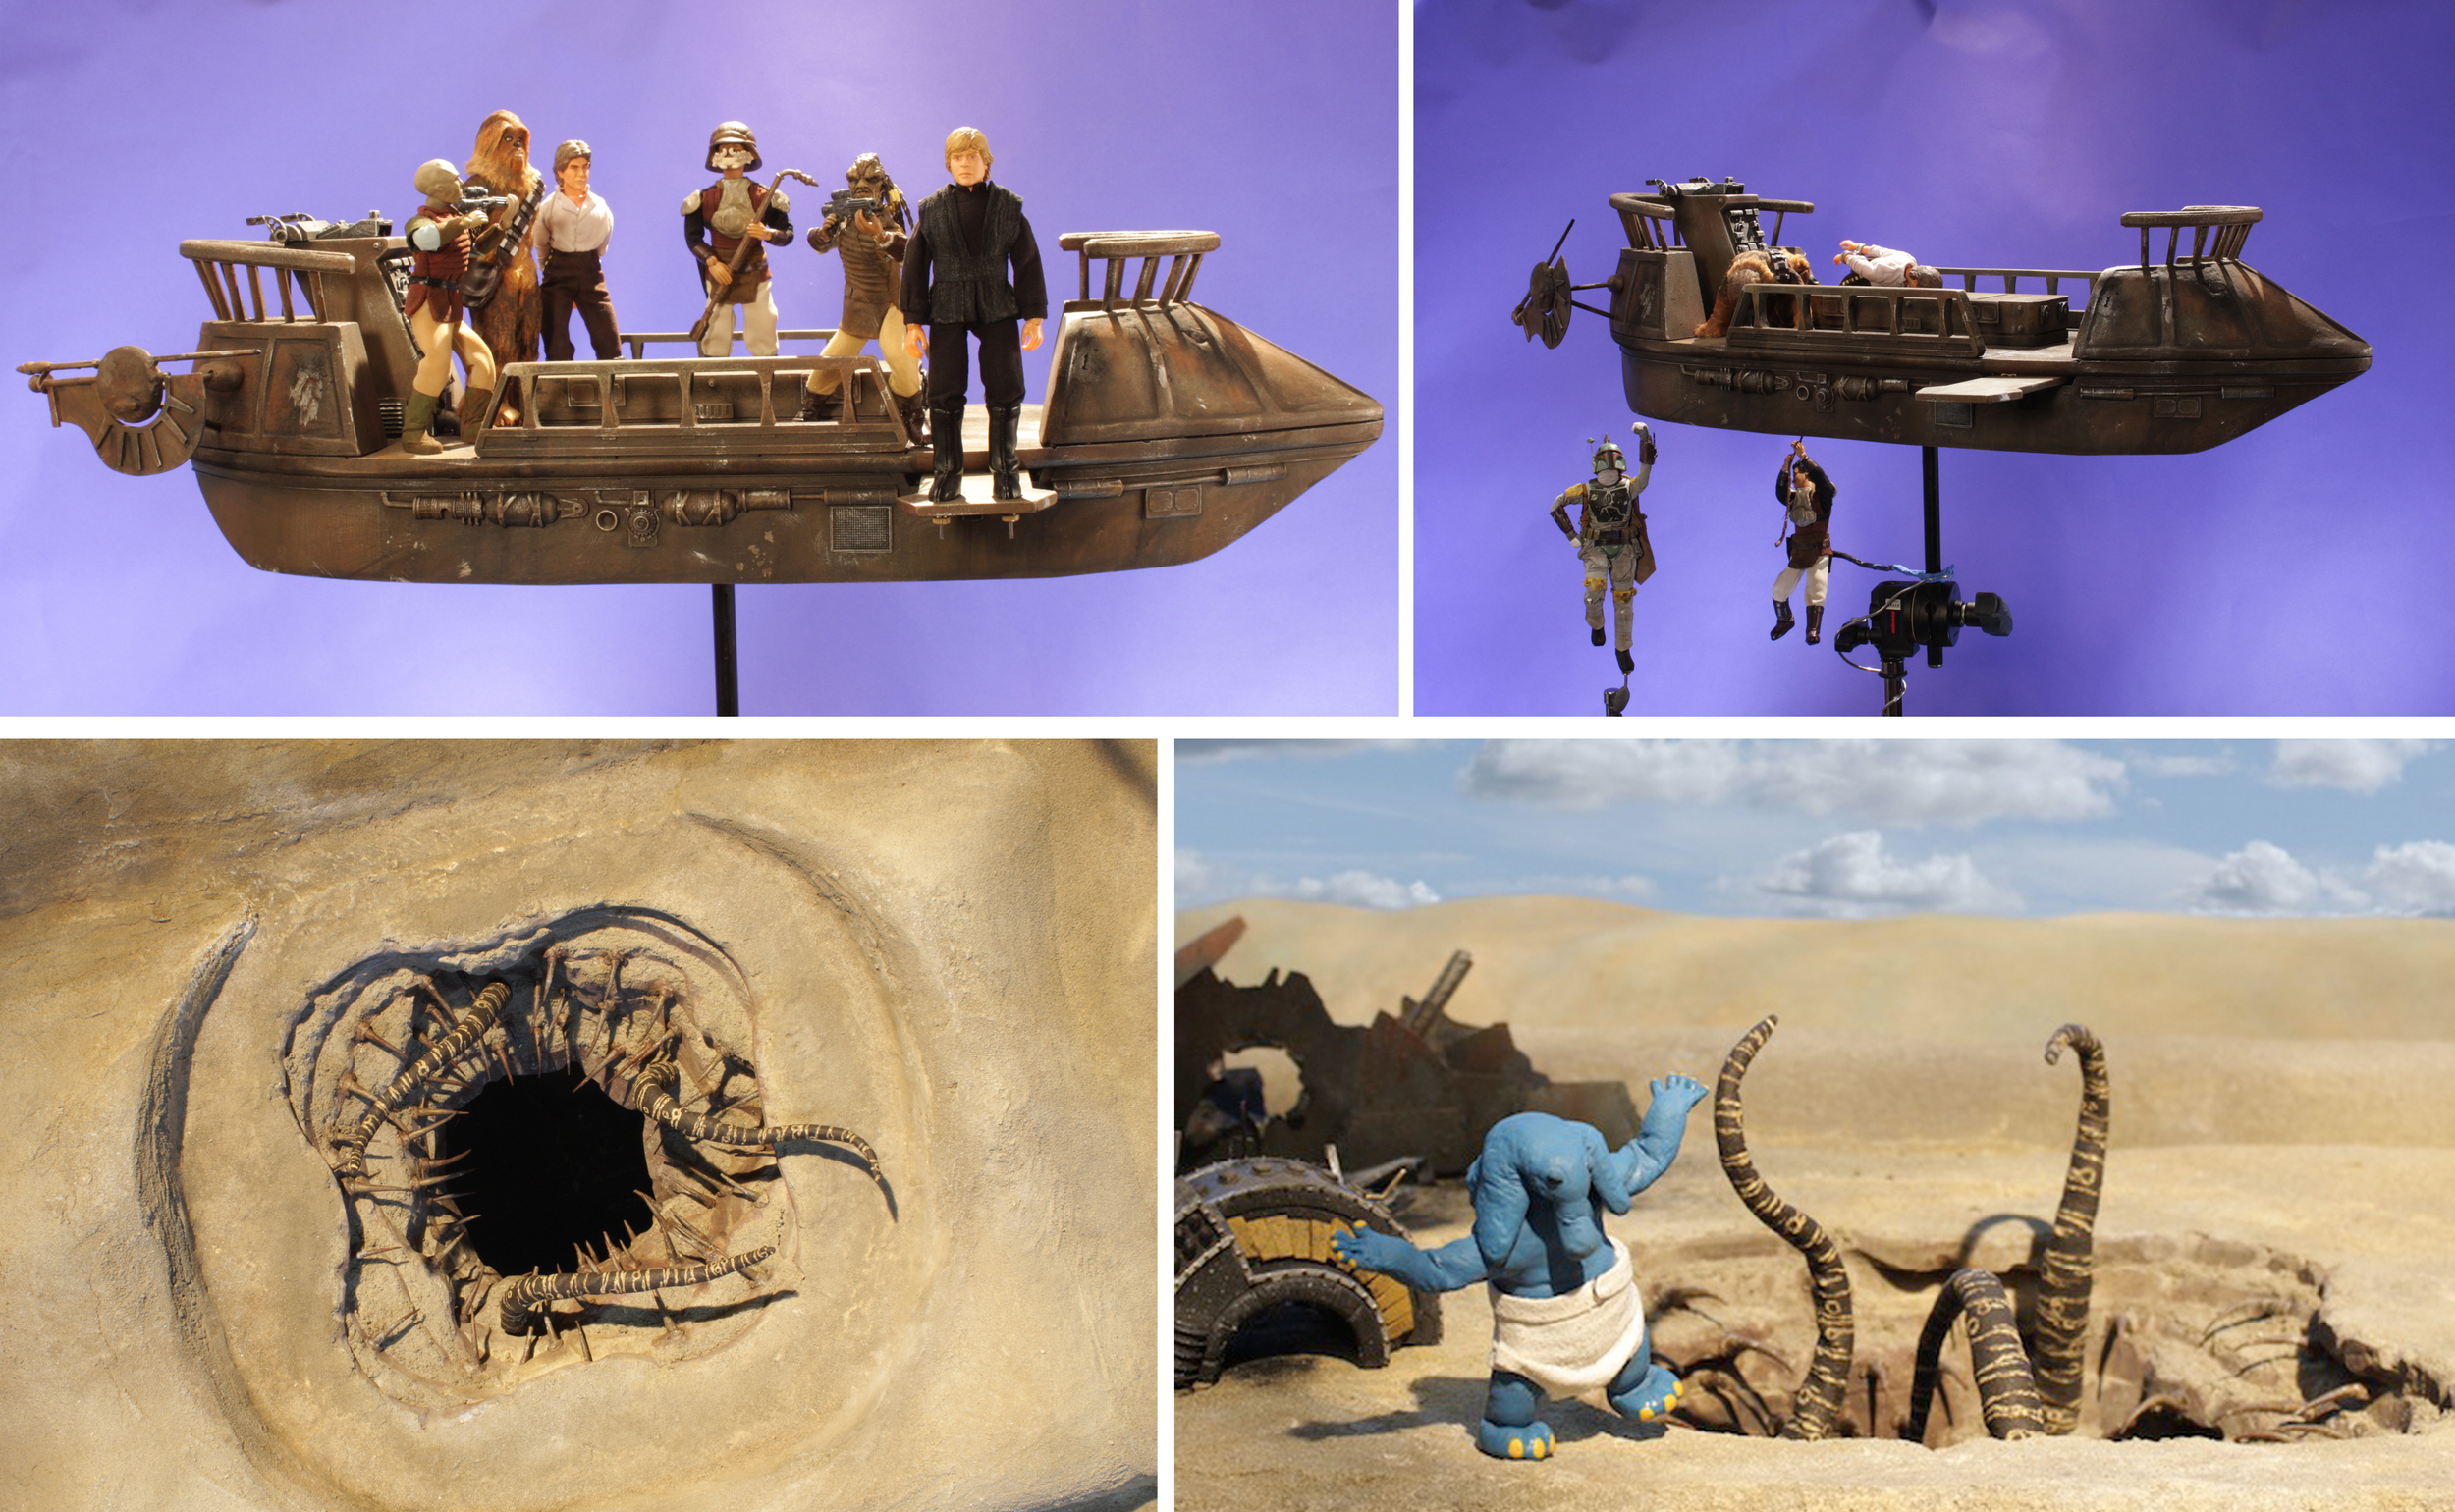 Robot Chicken Star Wars 3 Image 73.jpg